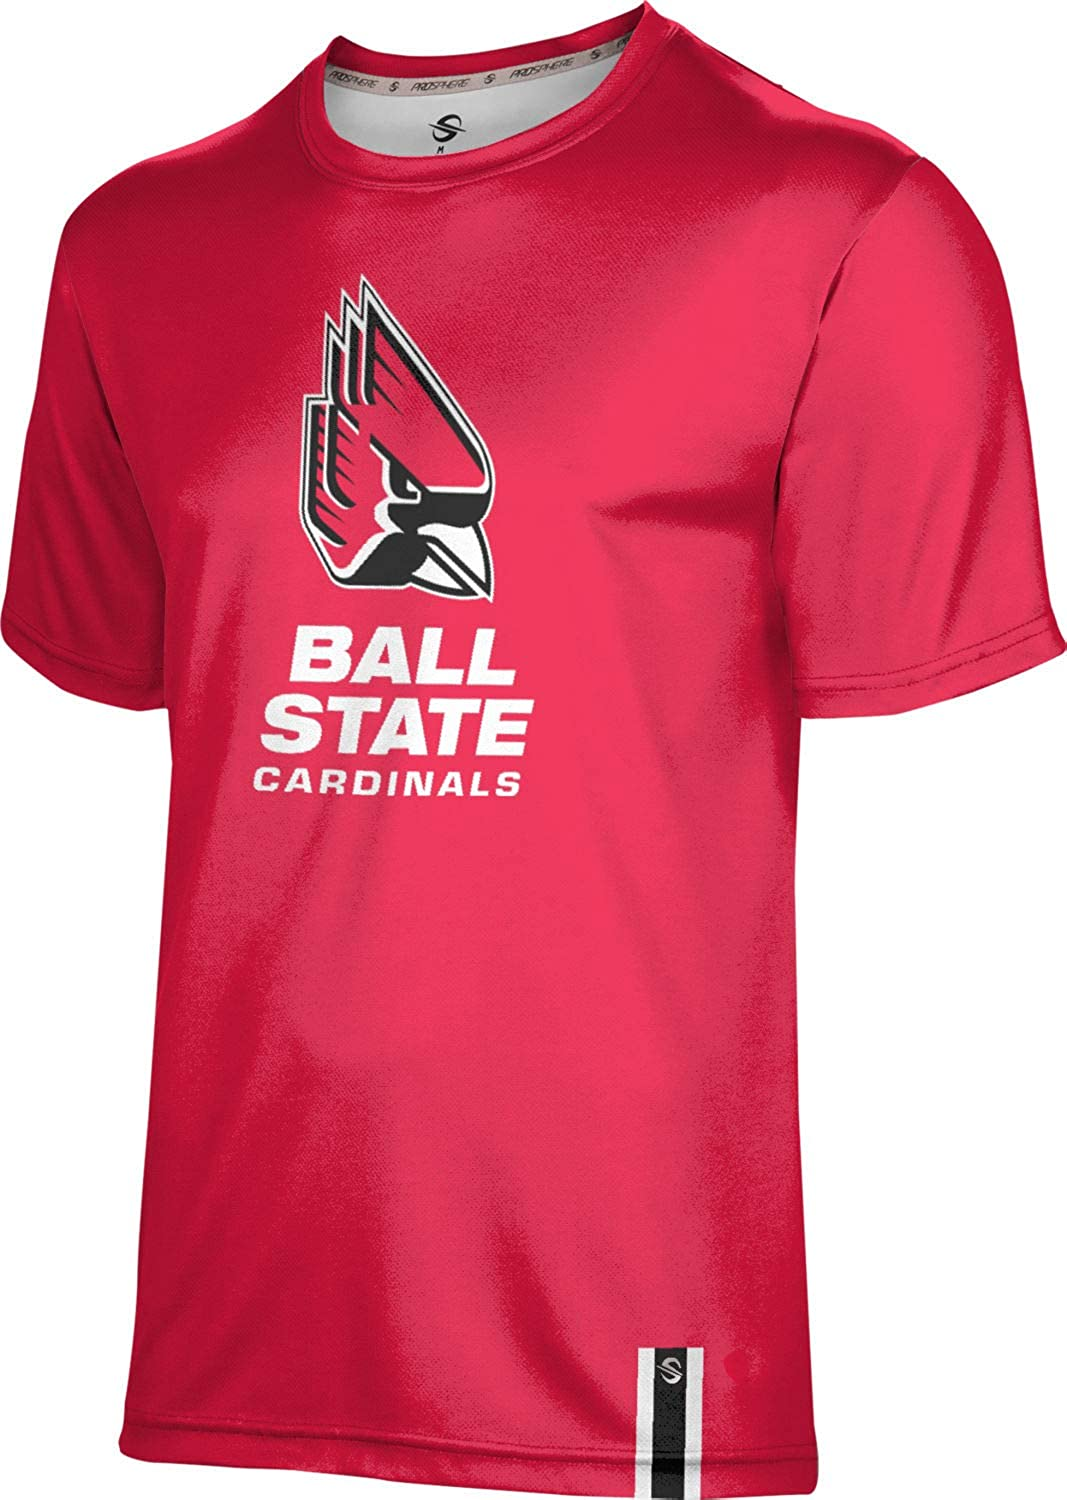 ProSphere Ball State University Solid T-Shirt Men's Performance Max 42% Luxury goods OFF